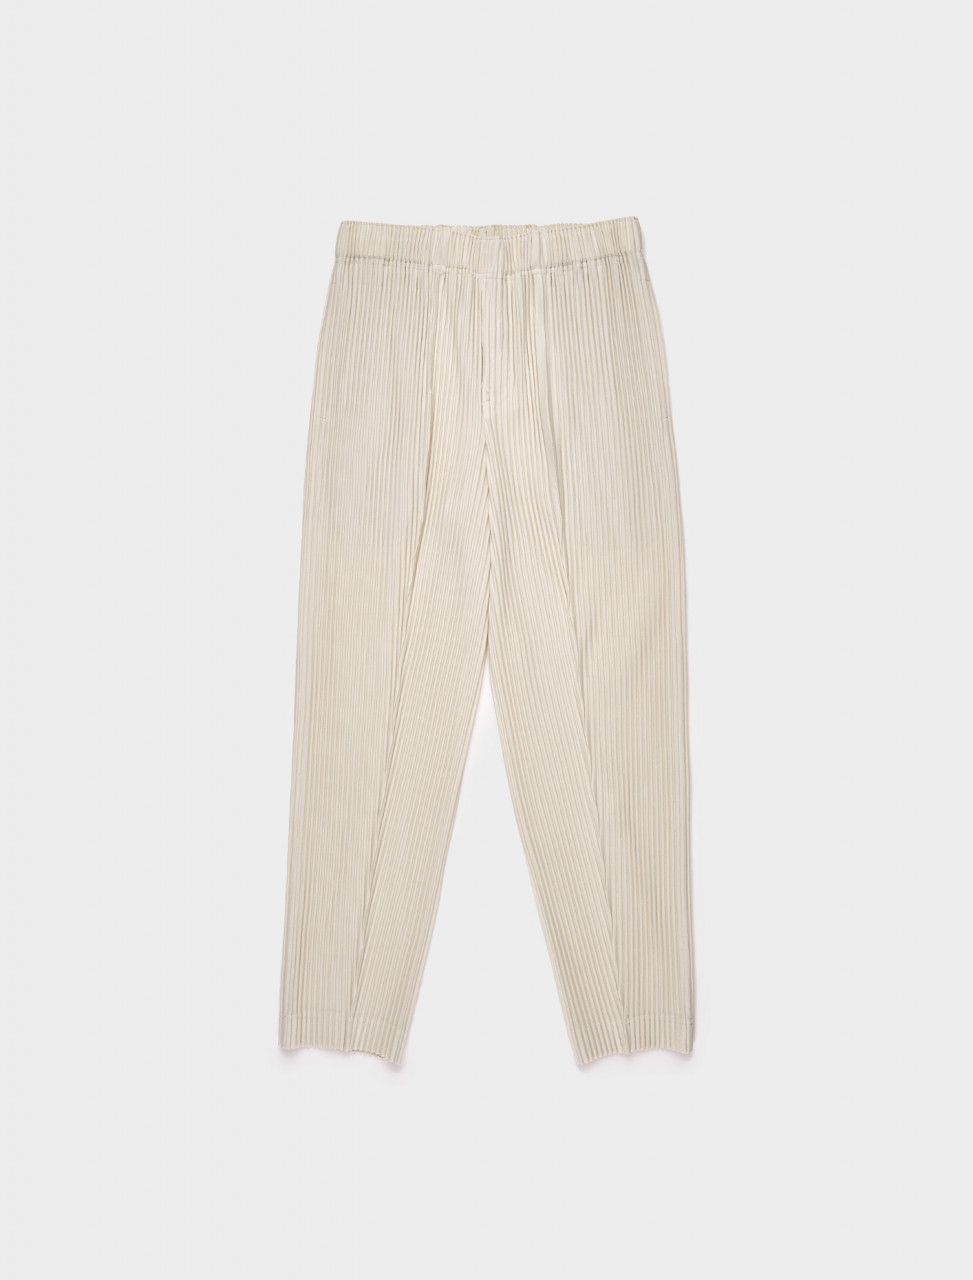 HP08JF135-03 ISSEY MIYAKE HOMME PLISSE PLEATED TROUSER IVORY